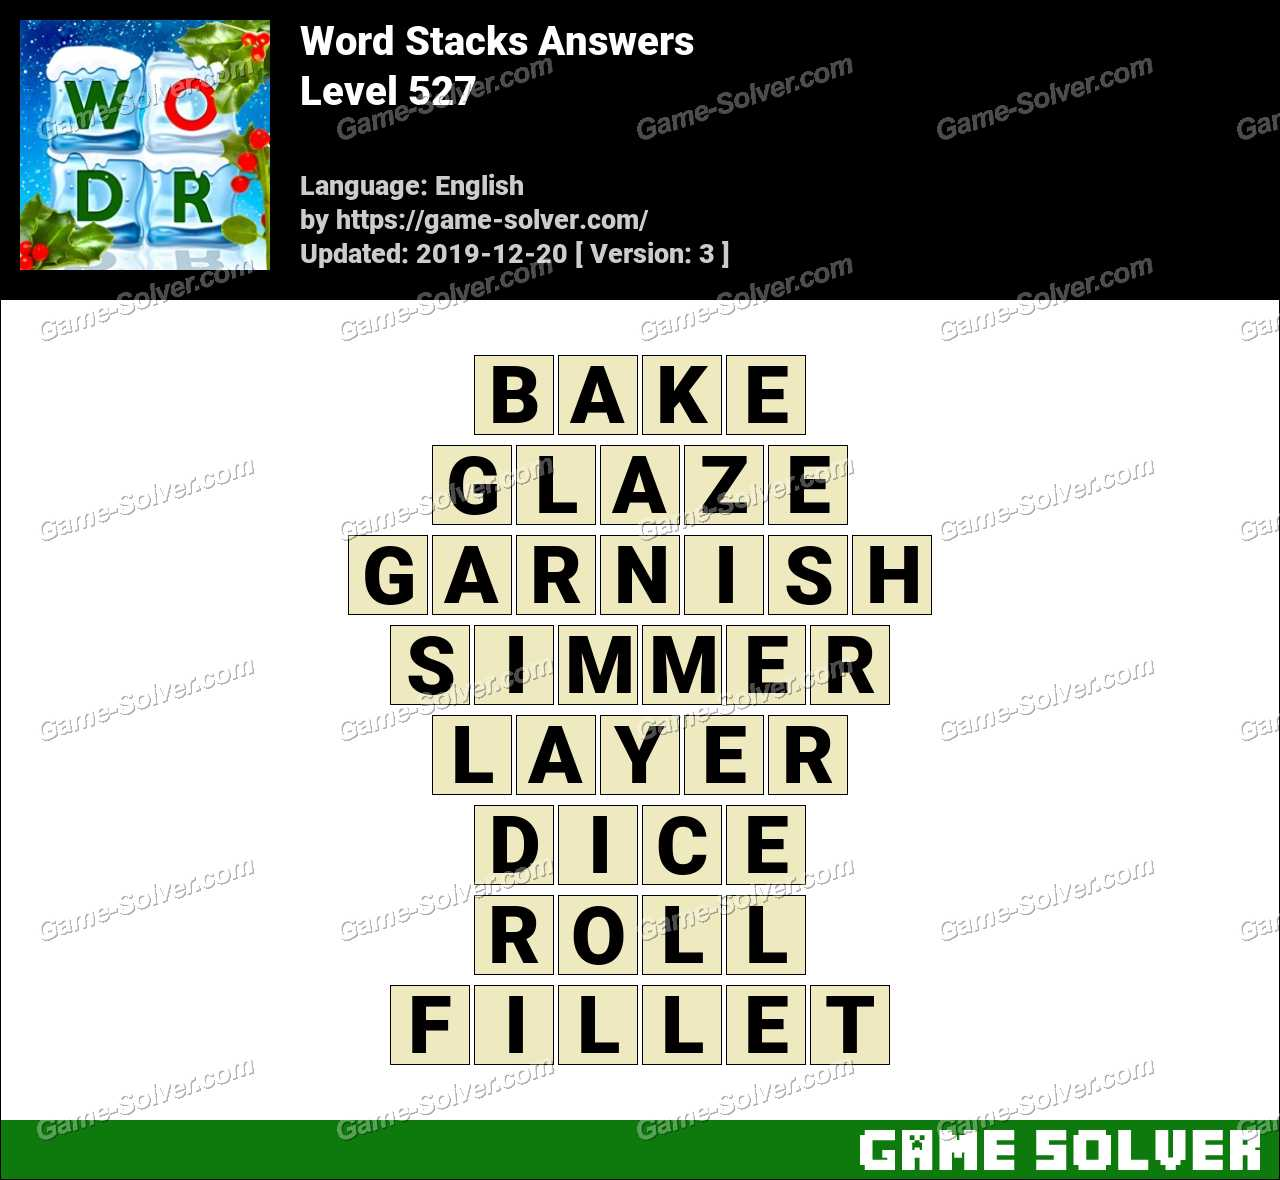 Word Stacks Level 527 Answers